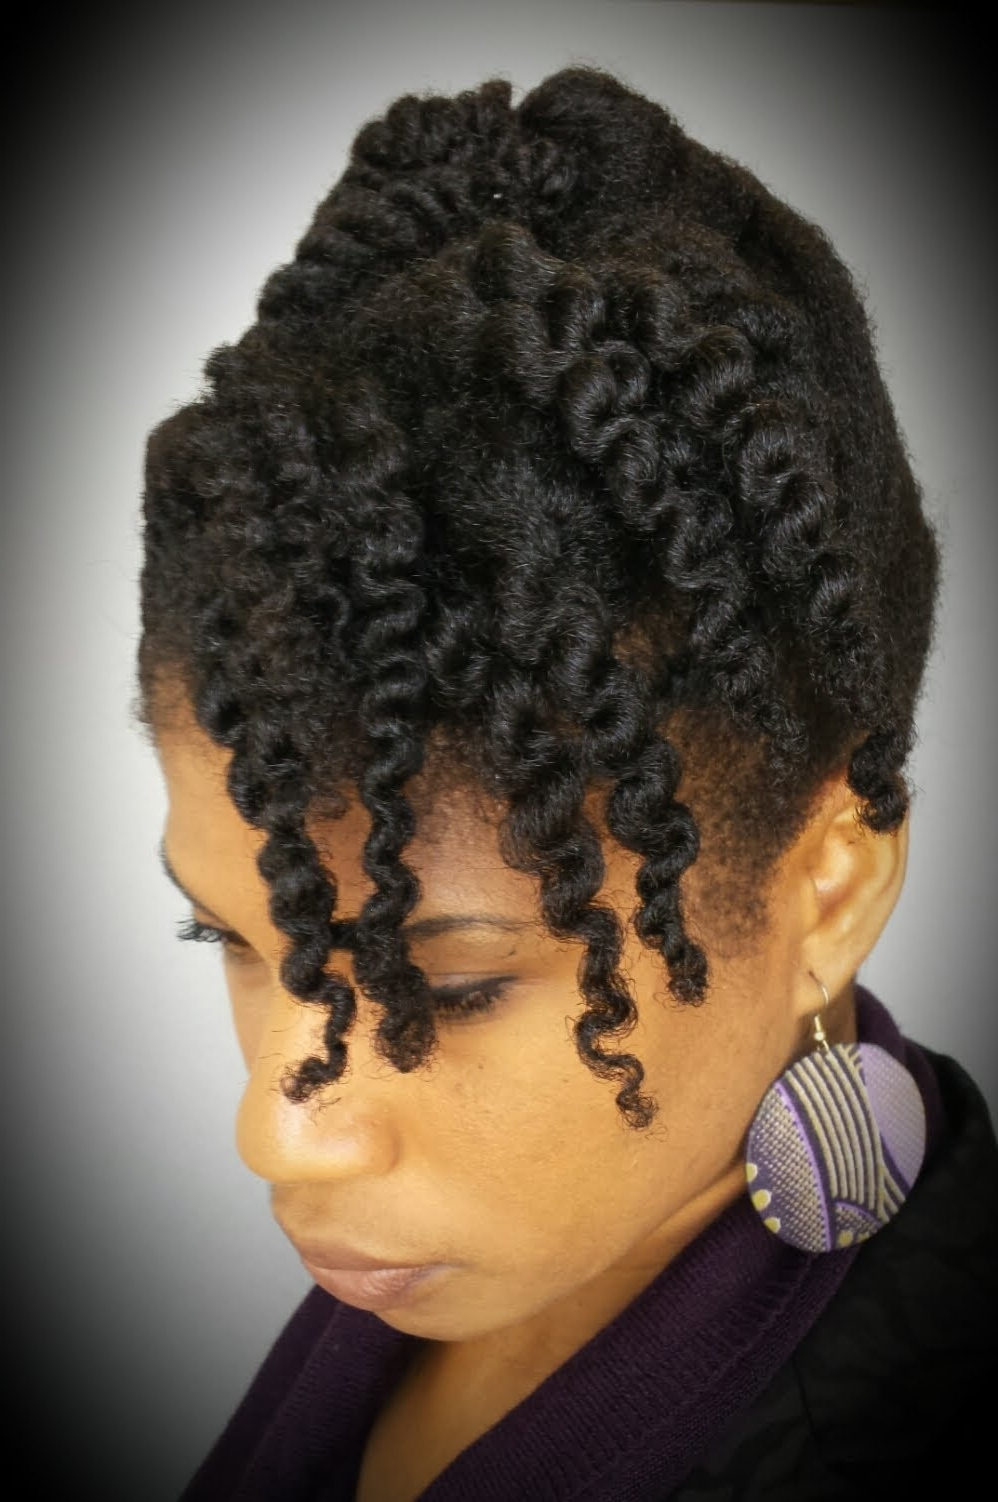 4 Natural Hair 10 Minute Cornrow And Twist Updo (Protective Style Within Cornrow Updo Hairstyles (View 1 of 15)